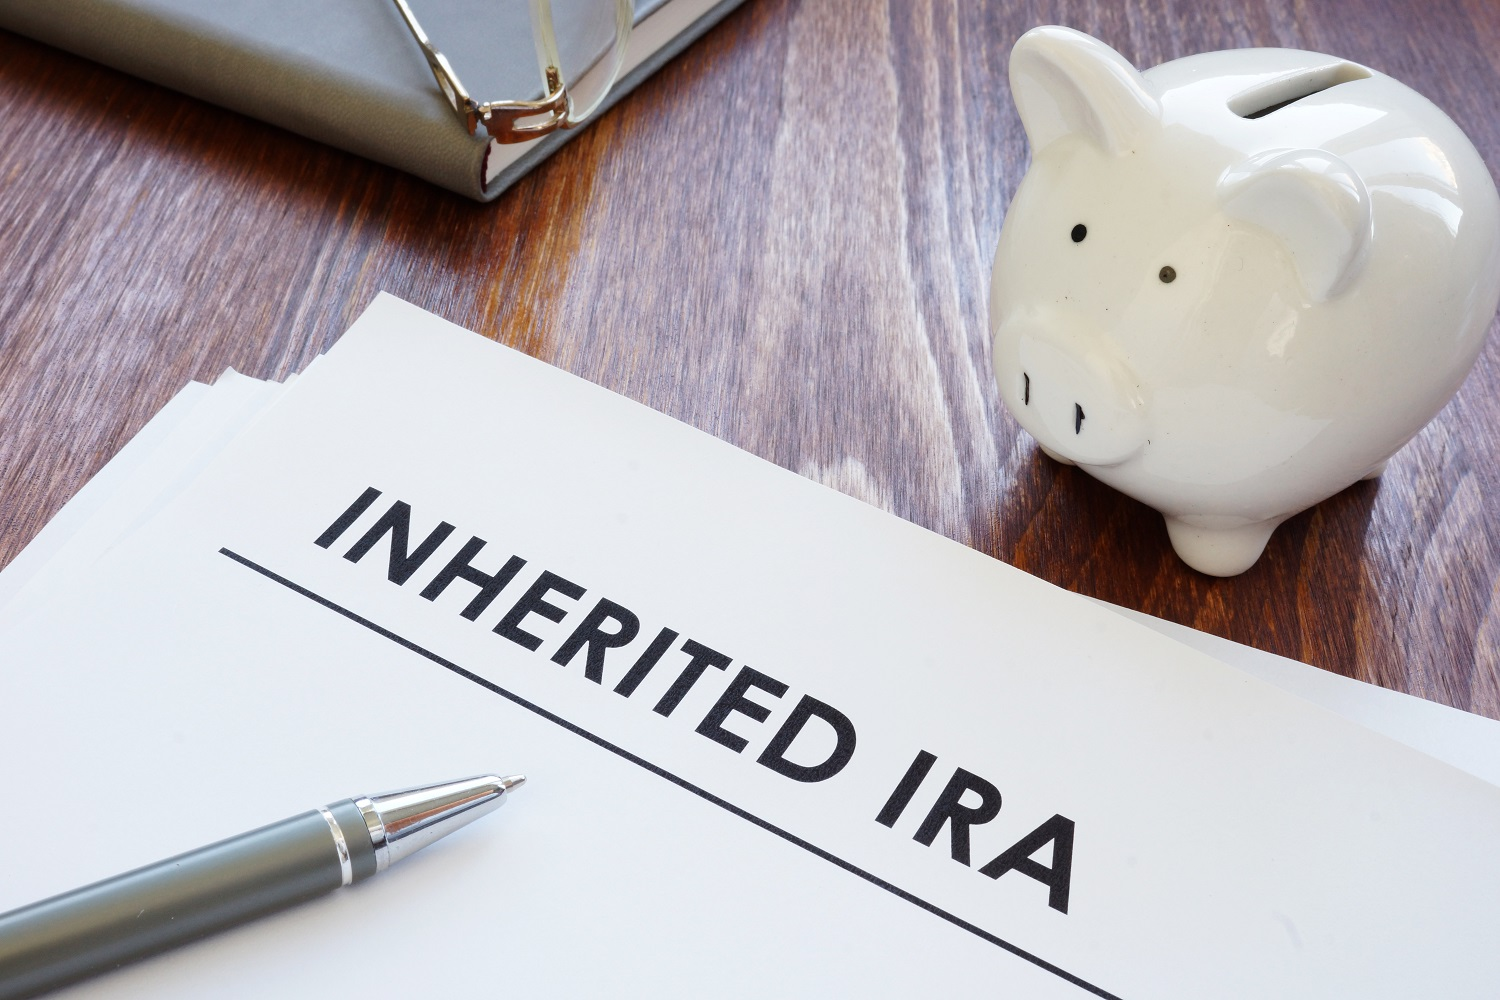 Inherited IRA SECURE Act wealth management tax advisor retirement planning jupiter fl 1000px